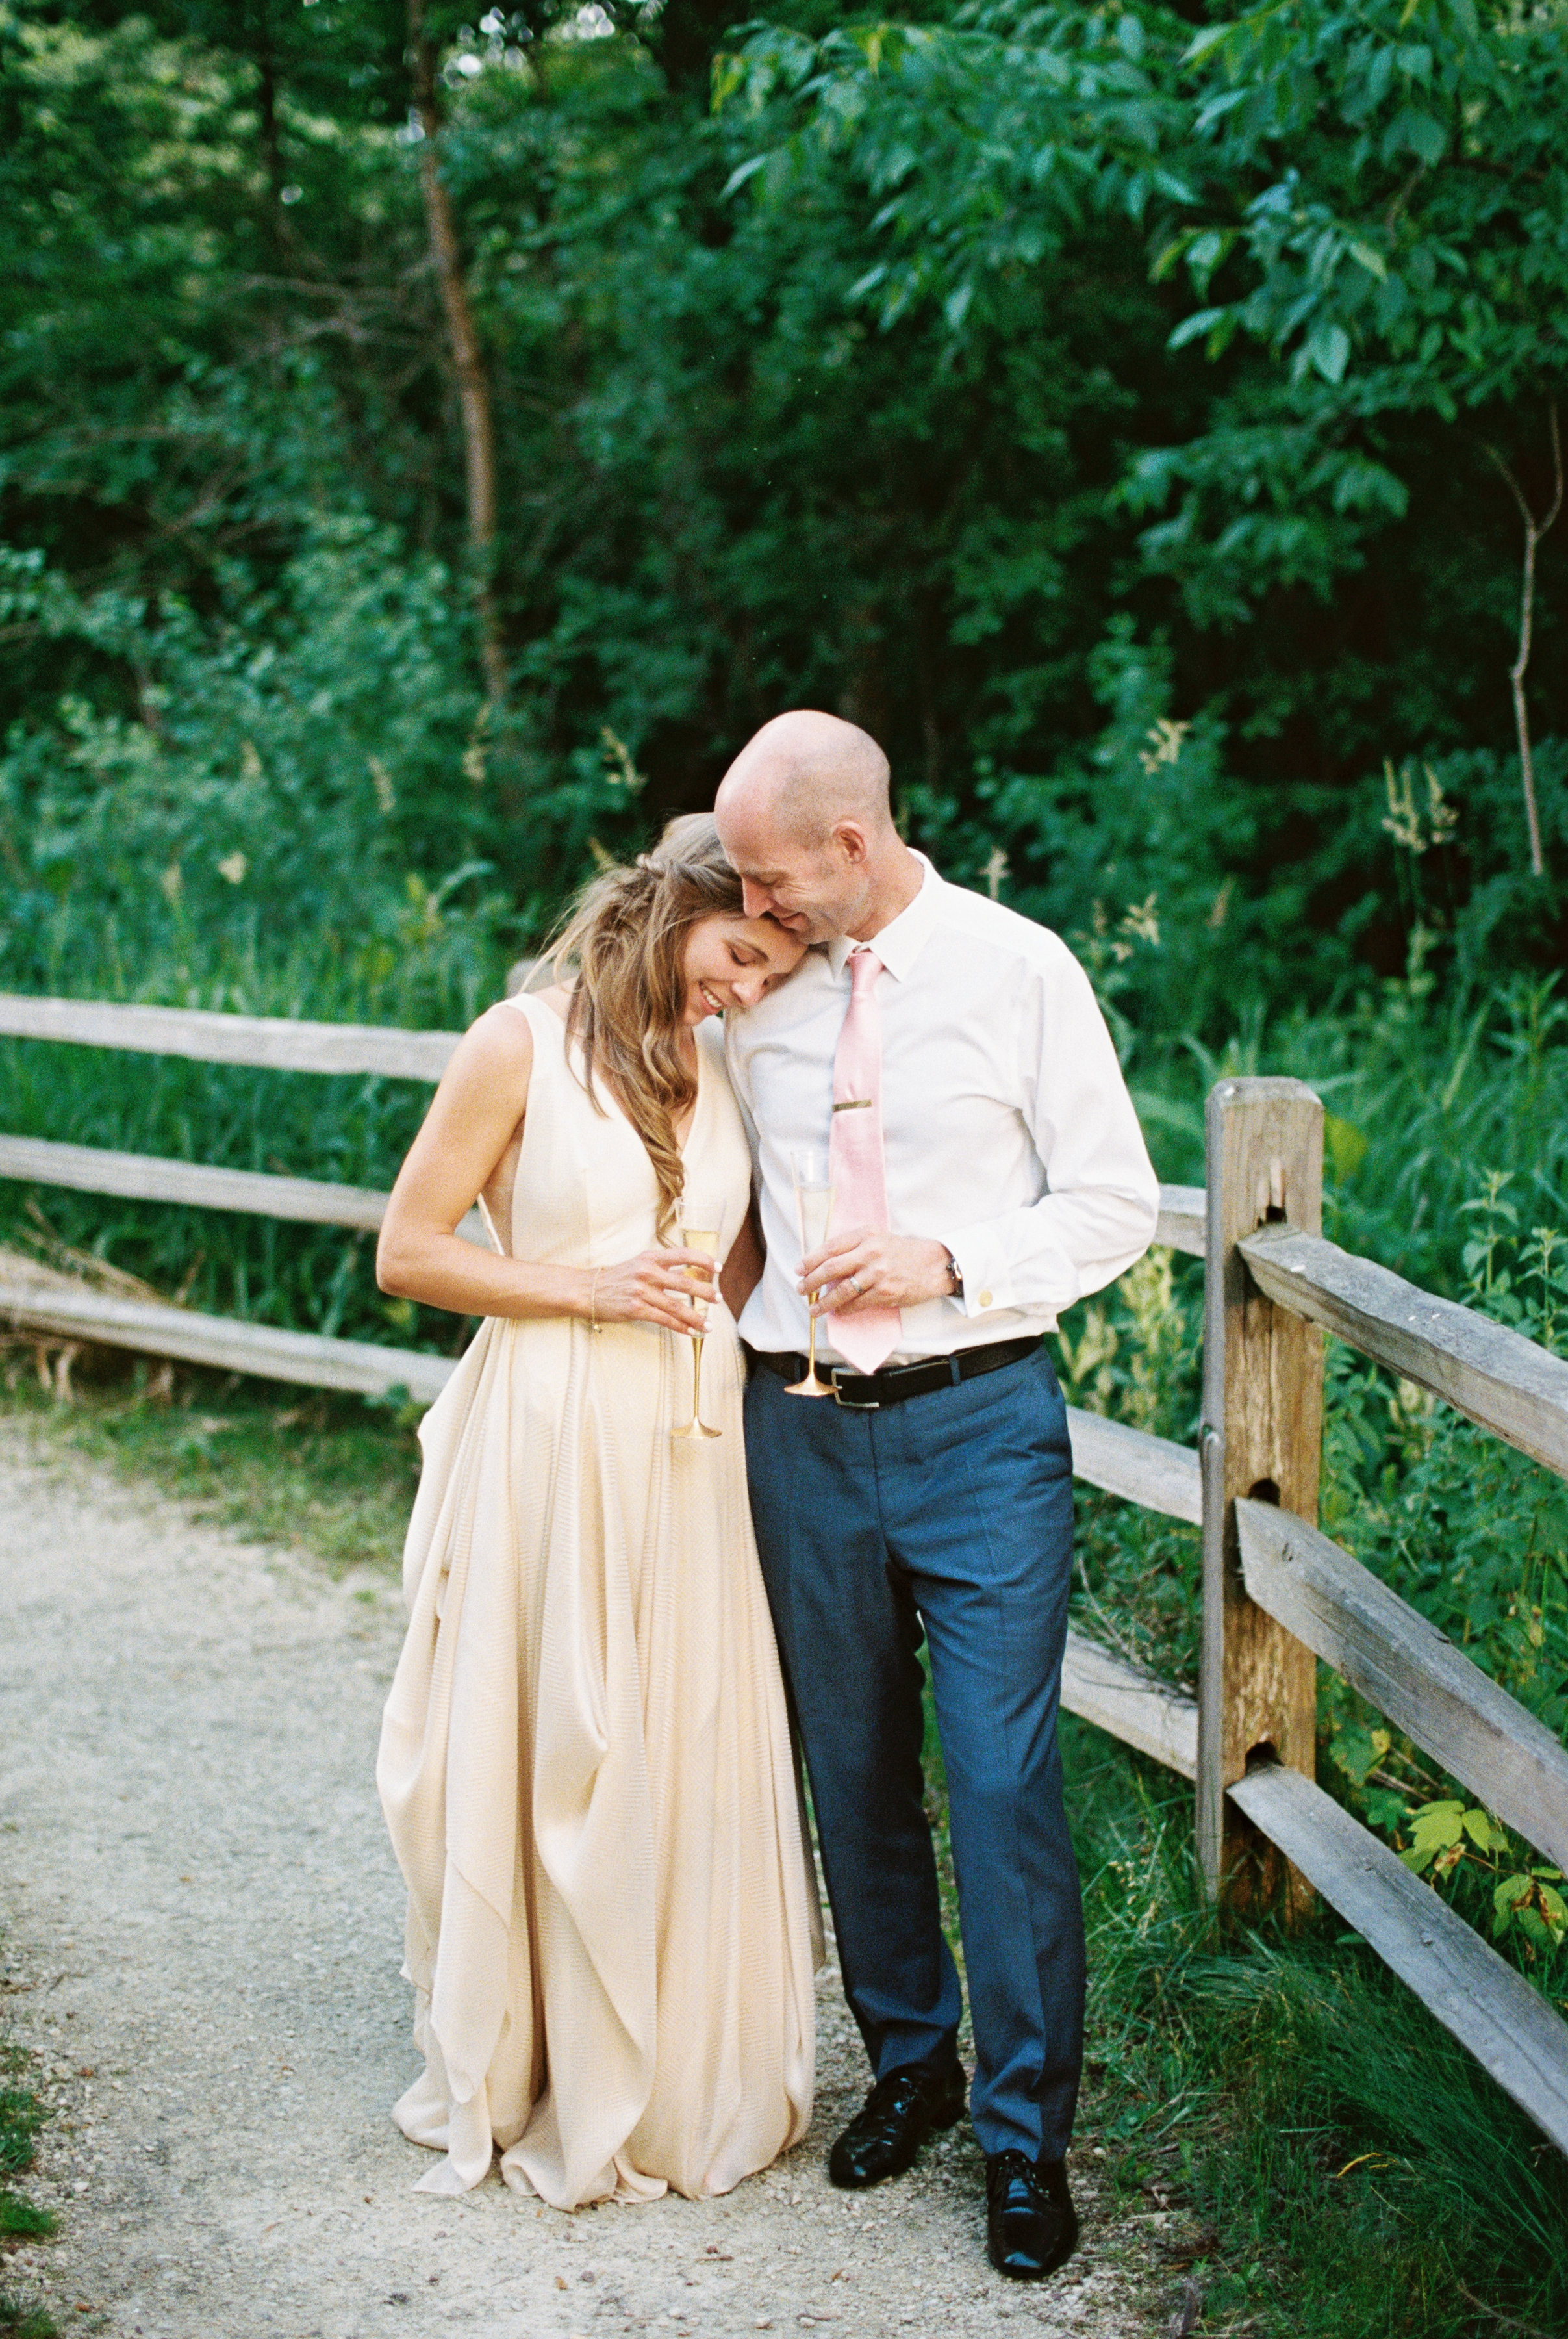 fine art wedding photography by Booth Photographics at Shully's Watermark in Thiensville, Wisconsin